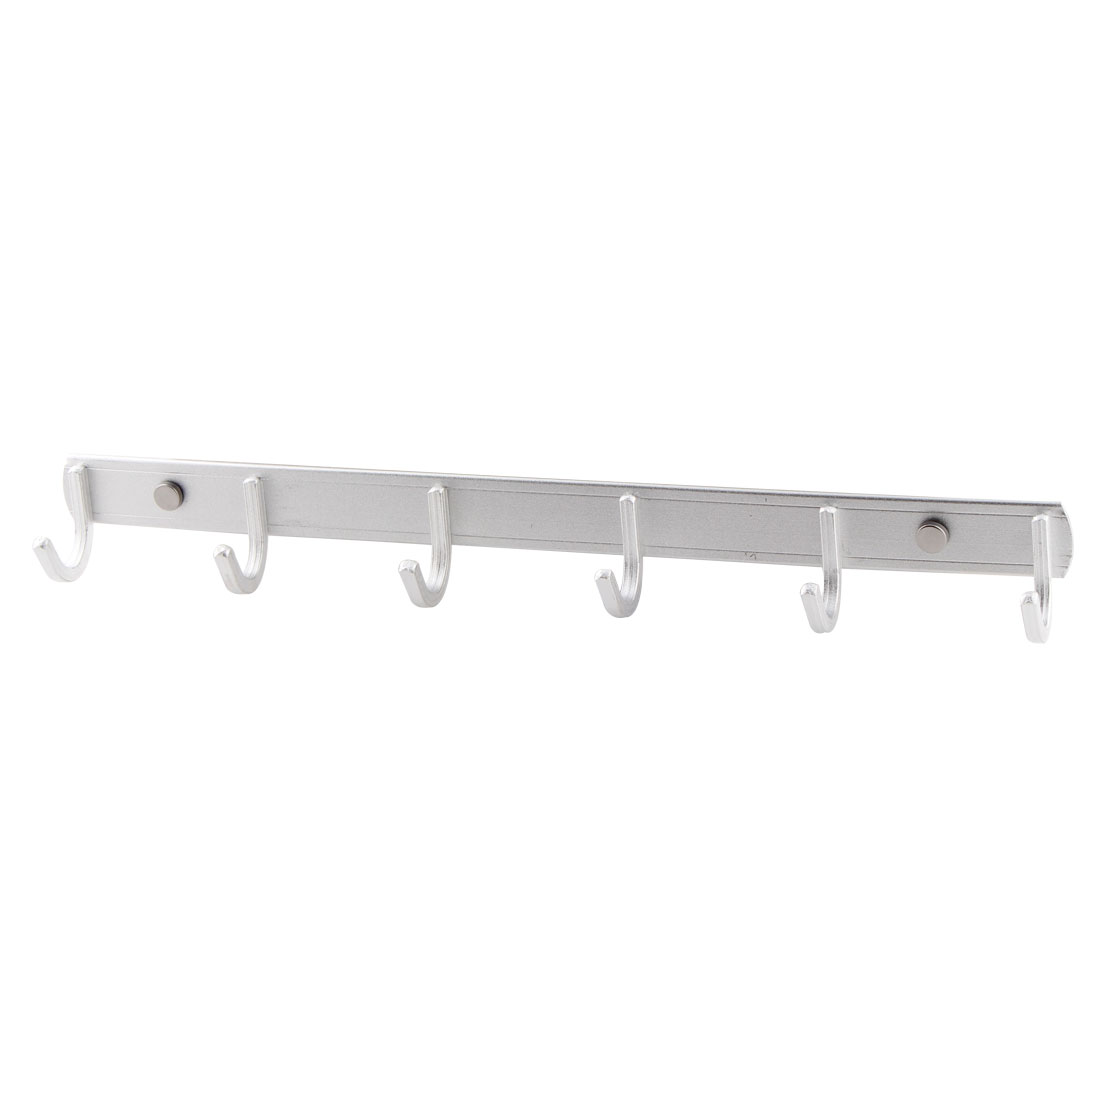 Household Alloy Wall Mounted 6 Hooks Hang Towel Hat Hanger Rack Silver Tone